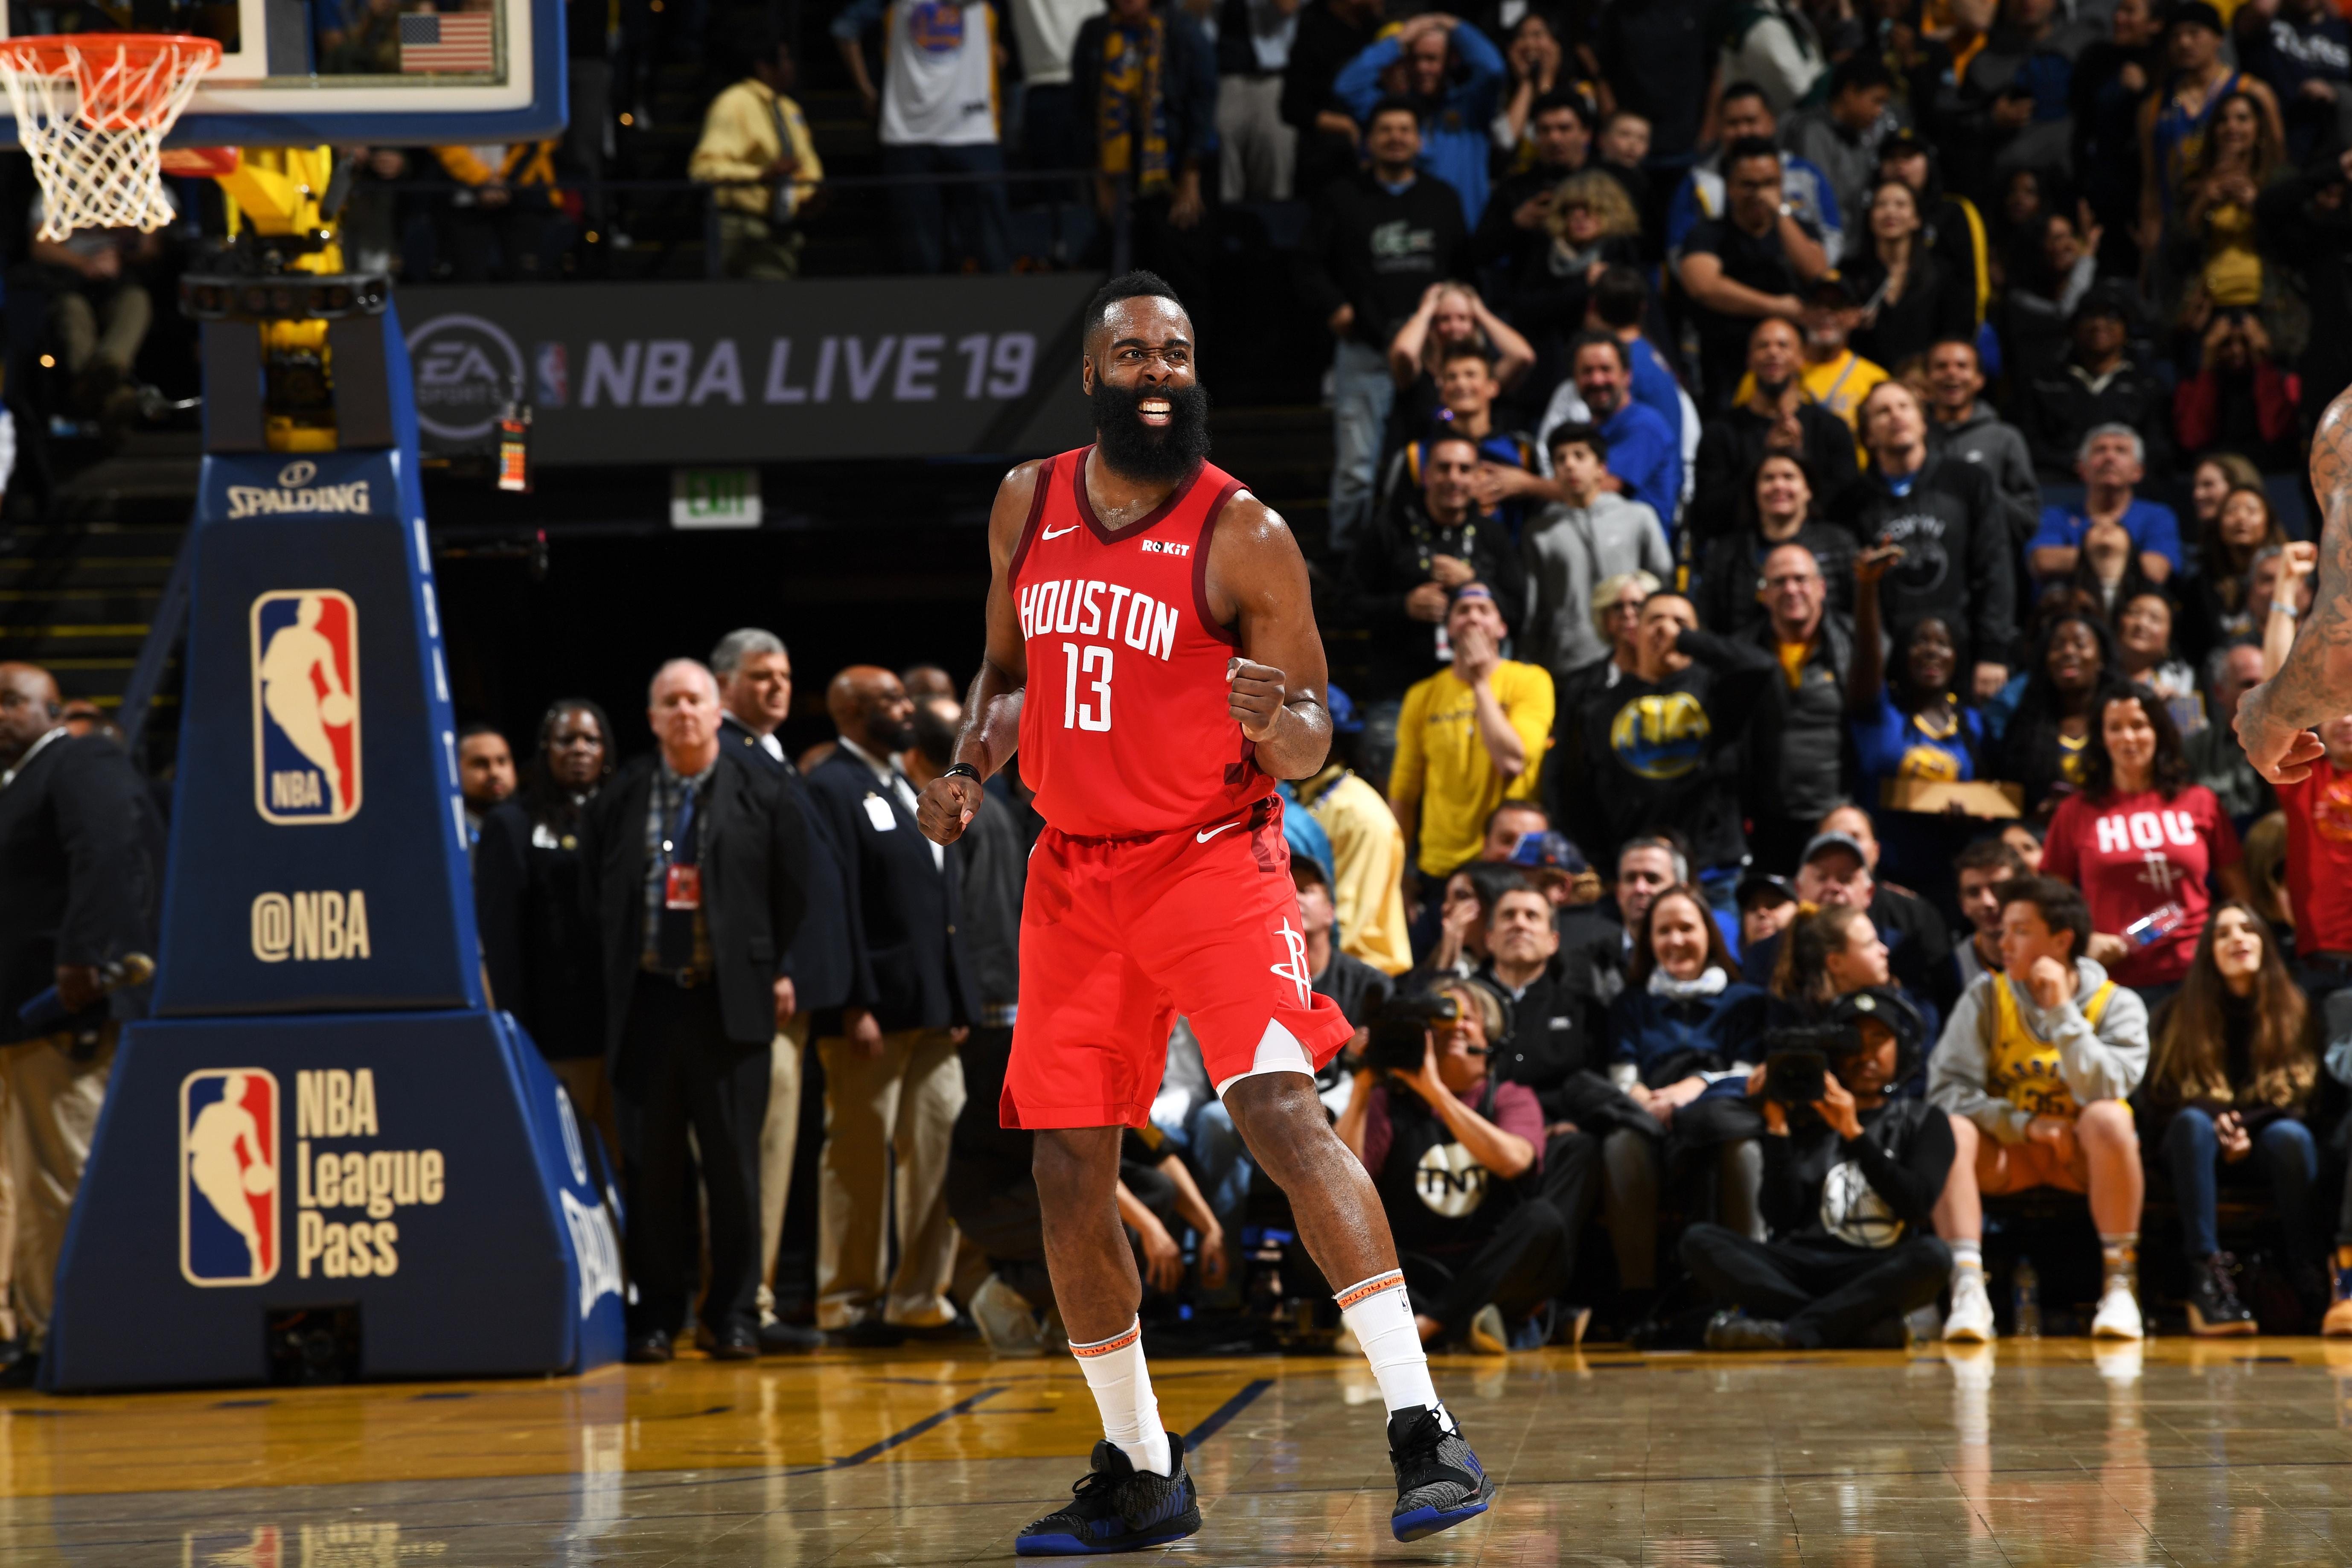 a85b1a7e9723 The night James Harden might have earned his second straight MVP